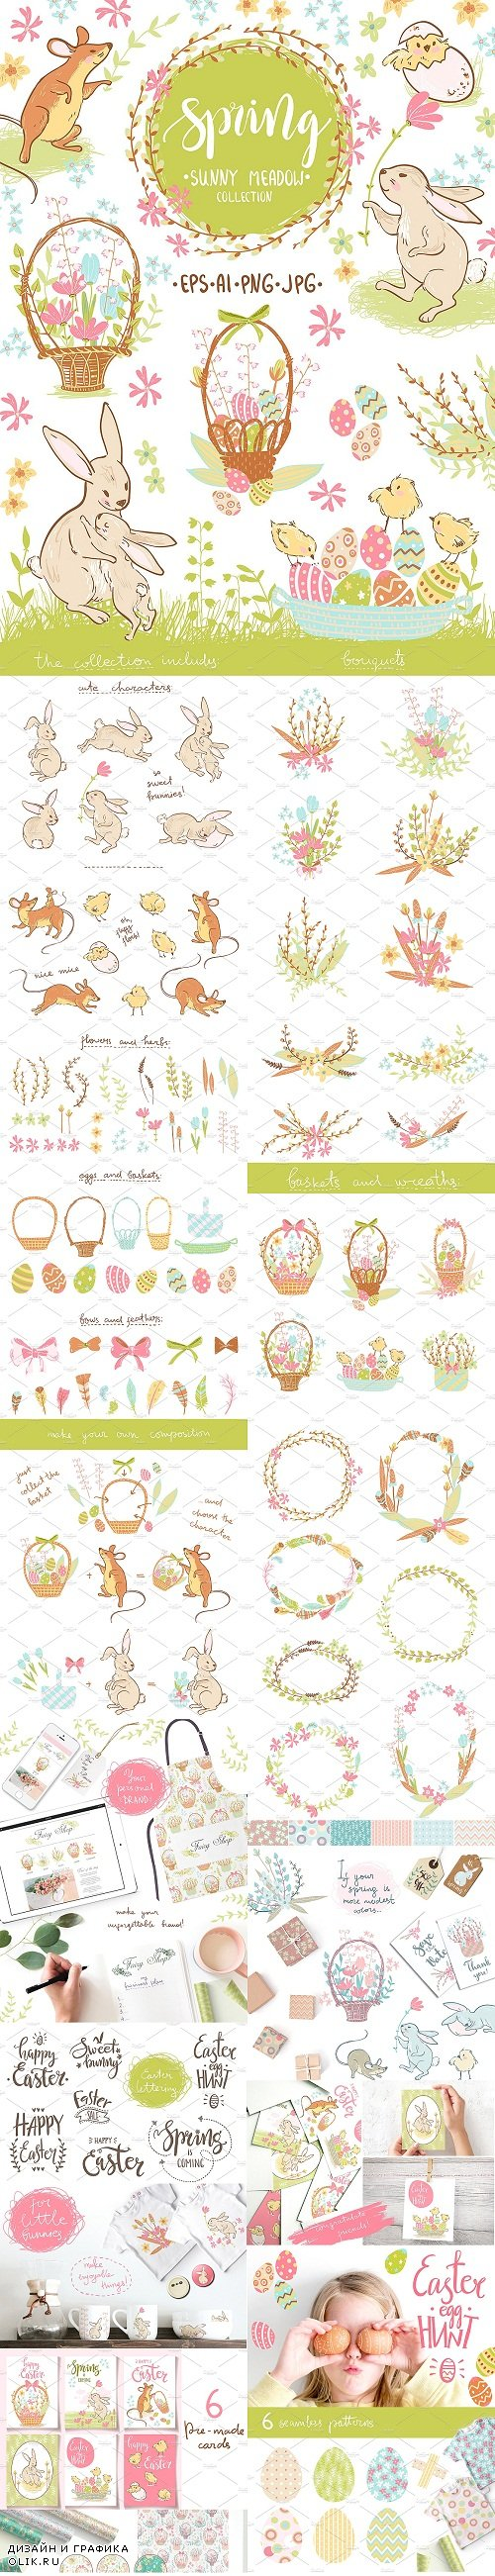 Spring meadow graphic set - 2331542